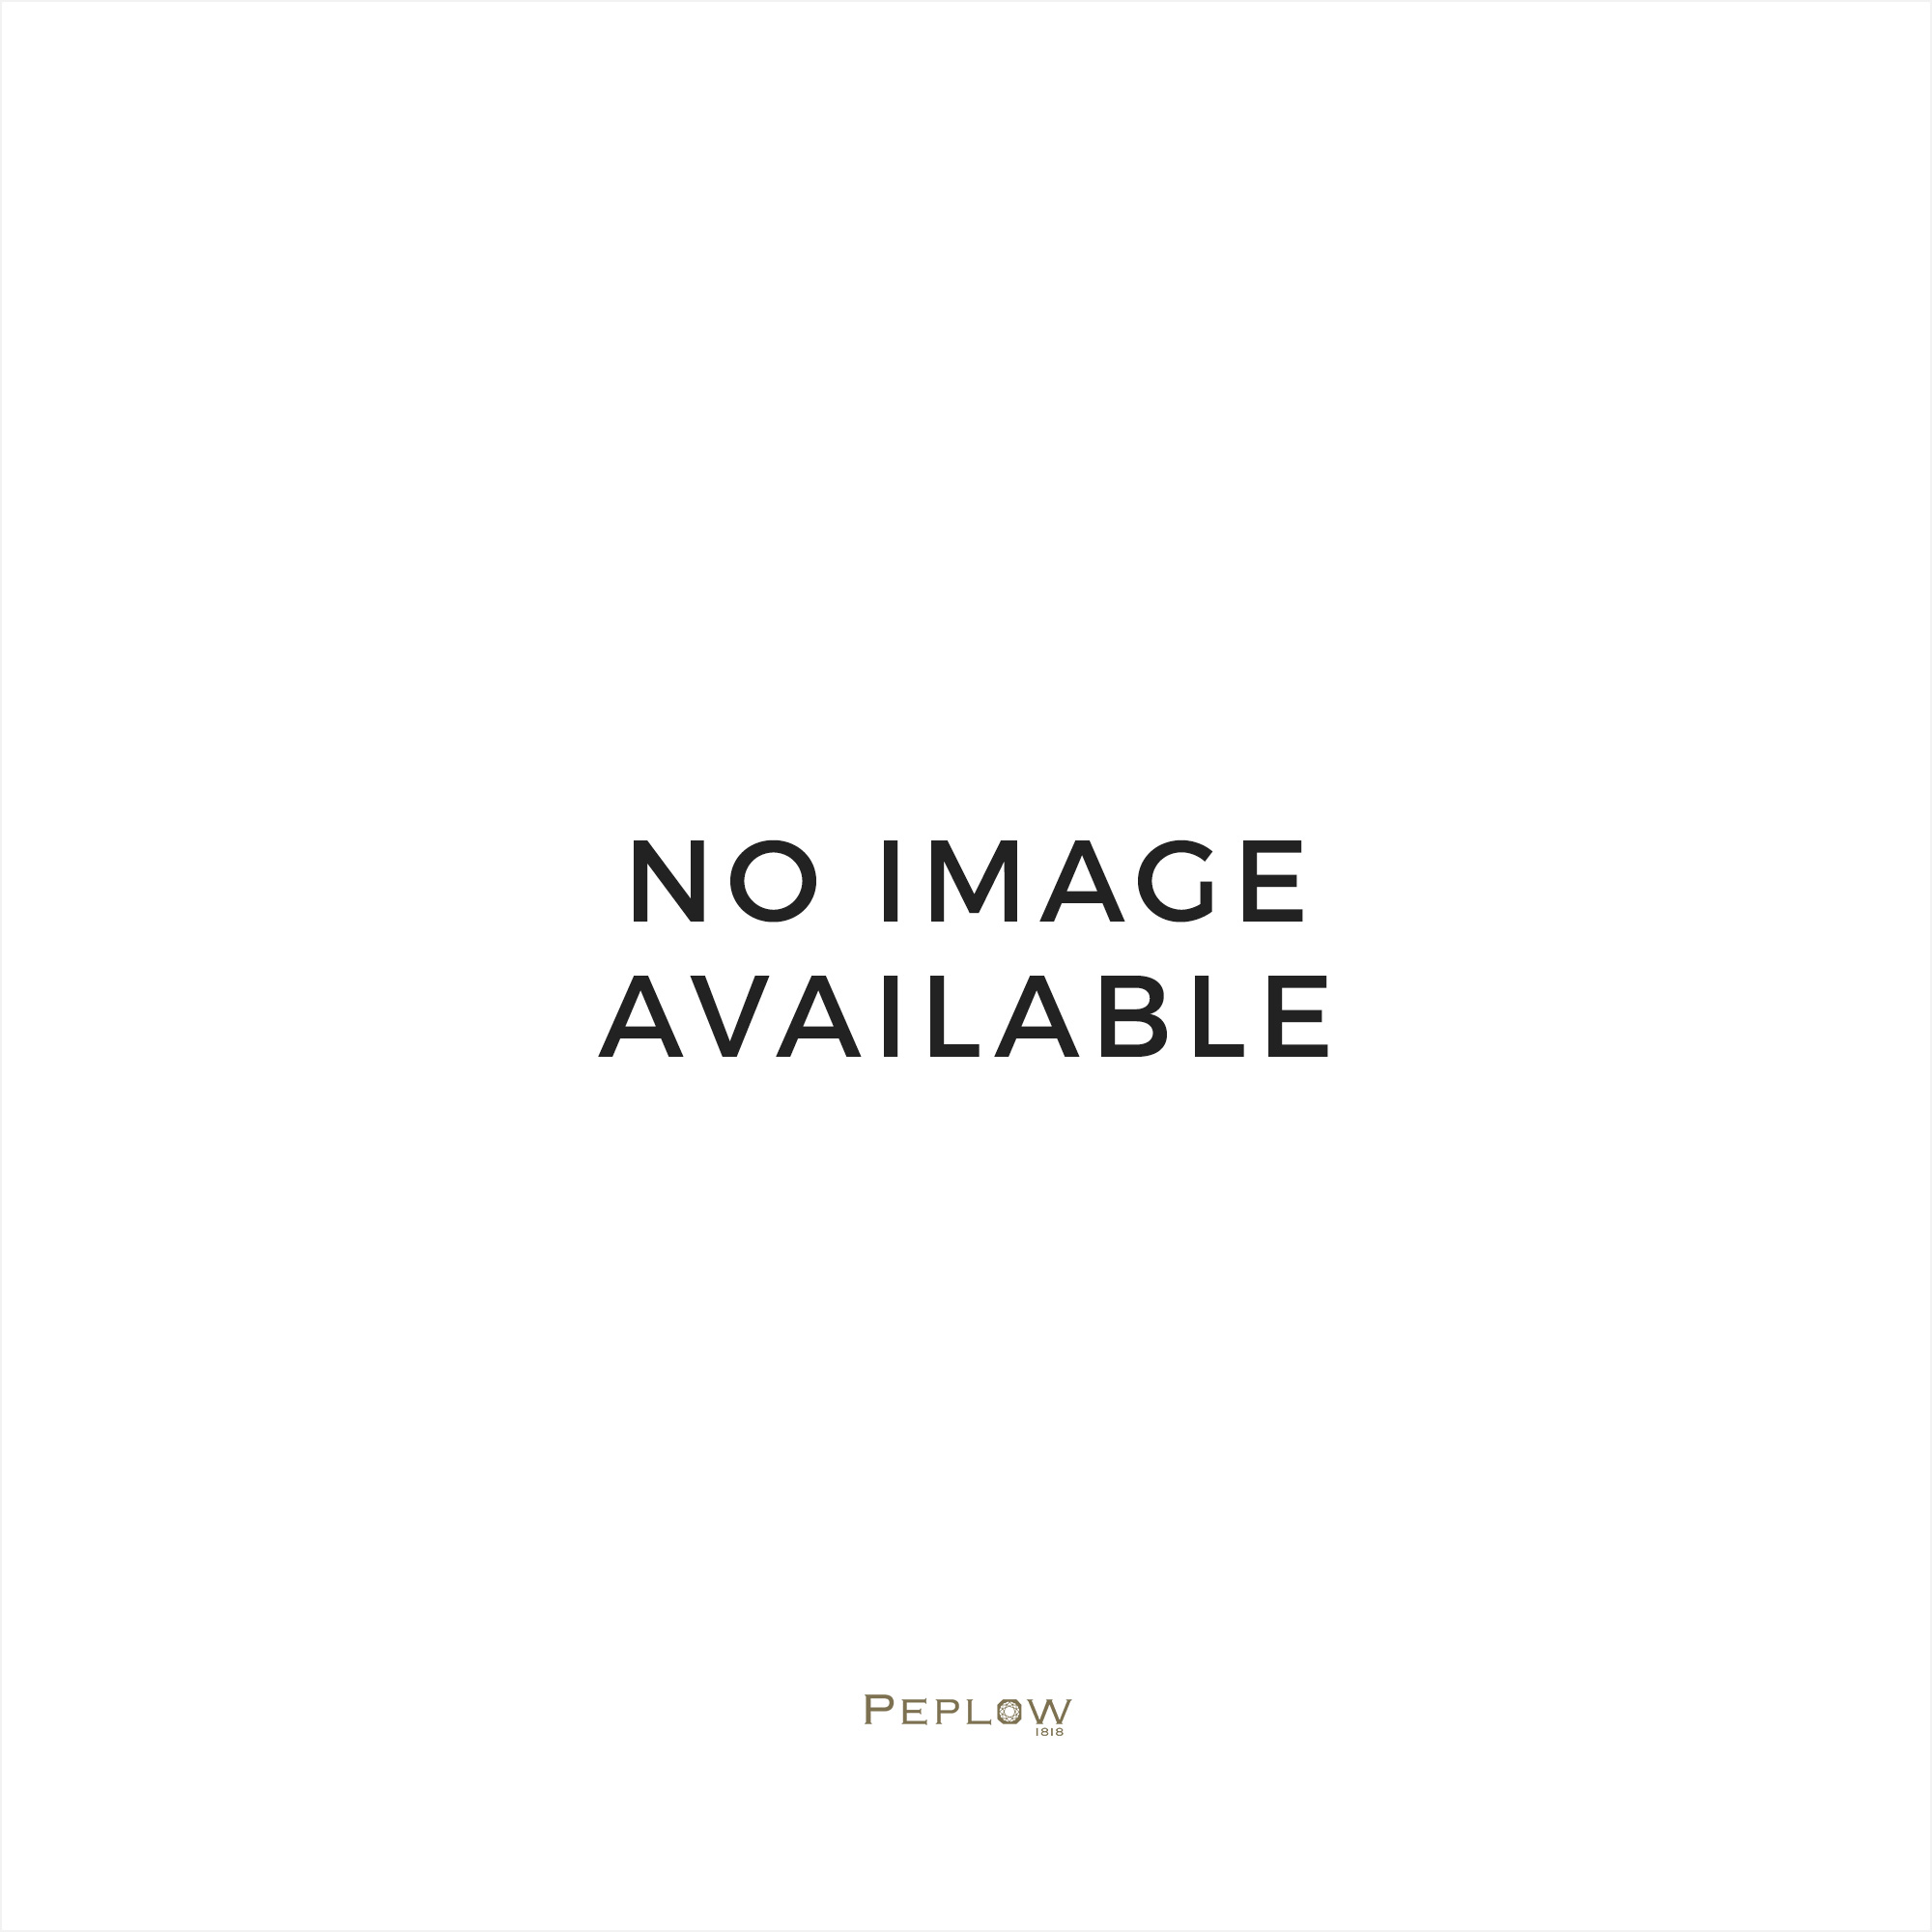 Citizen Watches Citizen Ladies Circle of Time Diamond Eco-Drive Watch